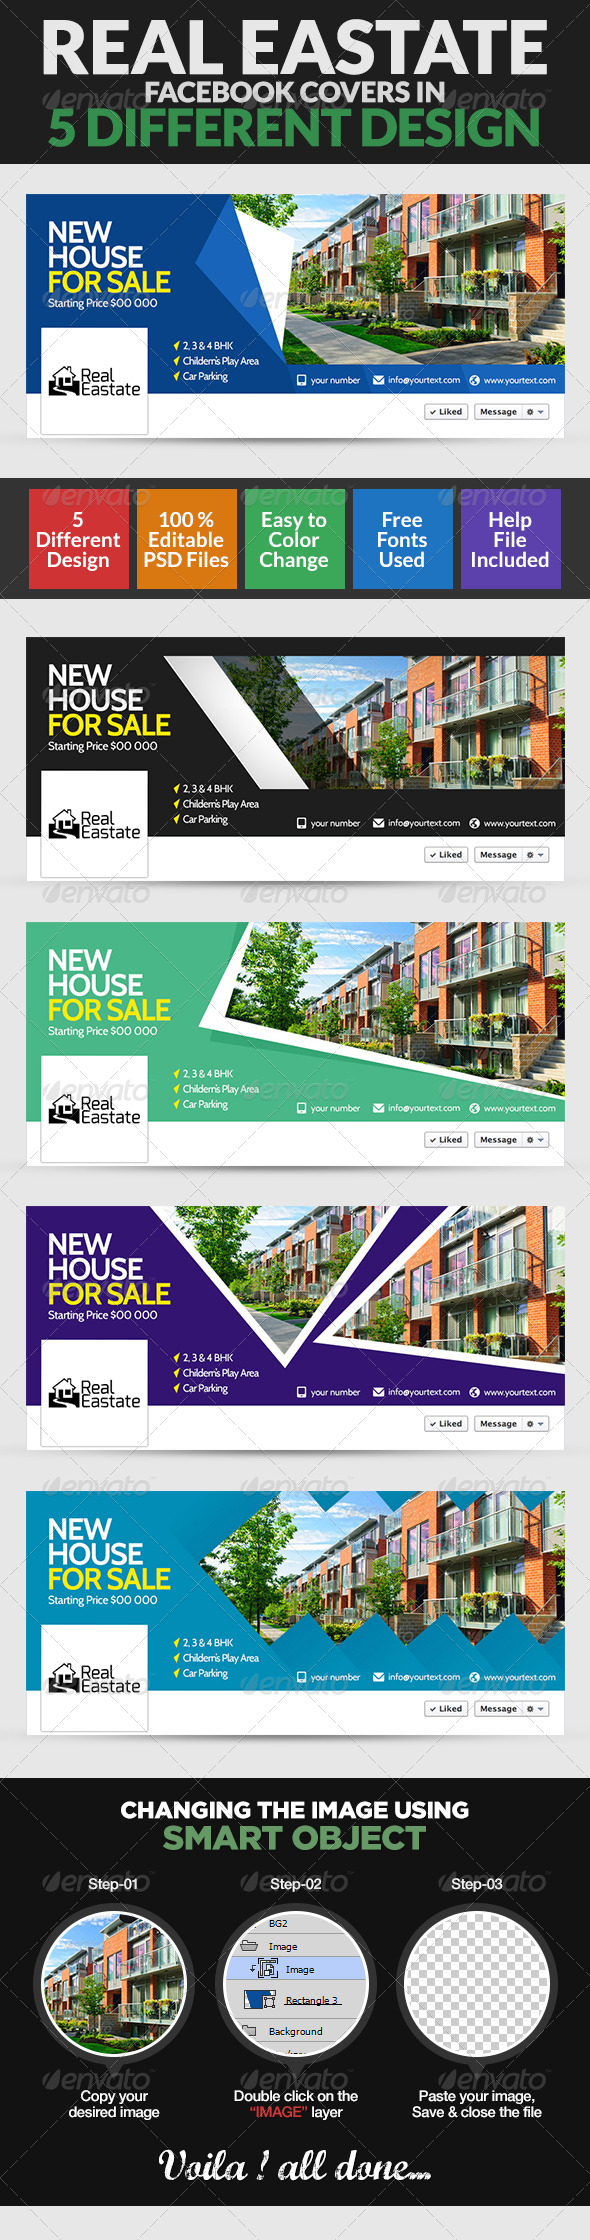 GraphicRiver Real Estate Facebook Cover Page 5 Designs 8154422